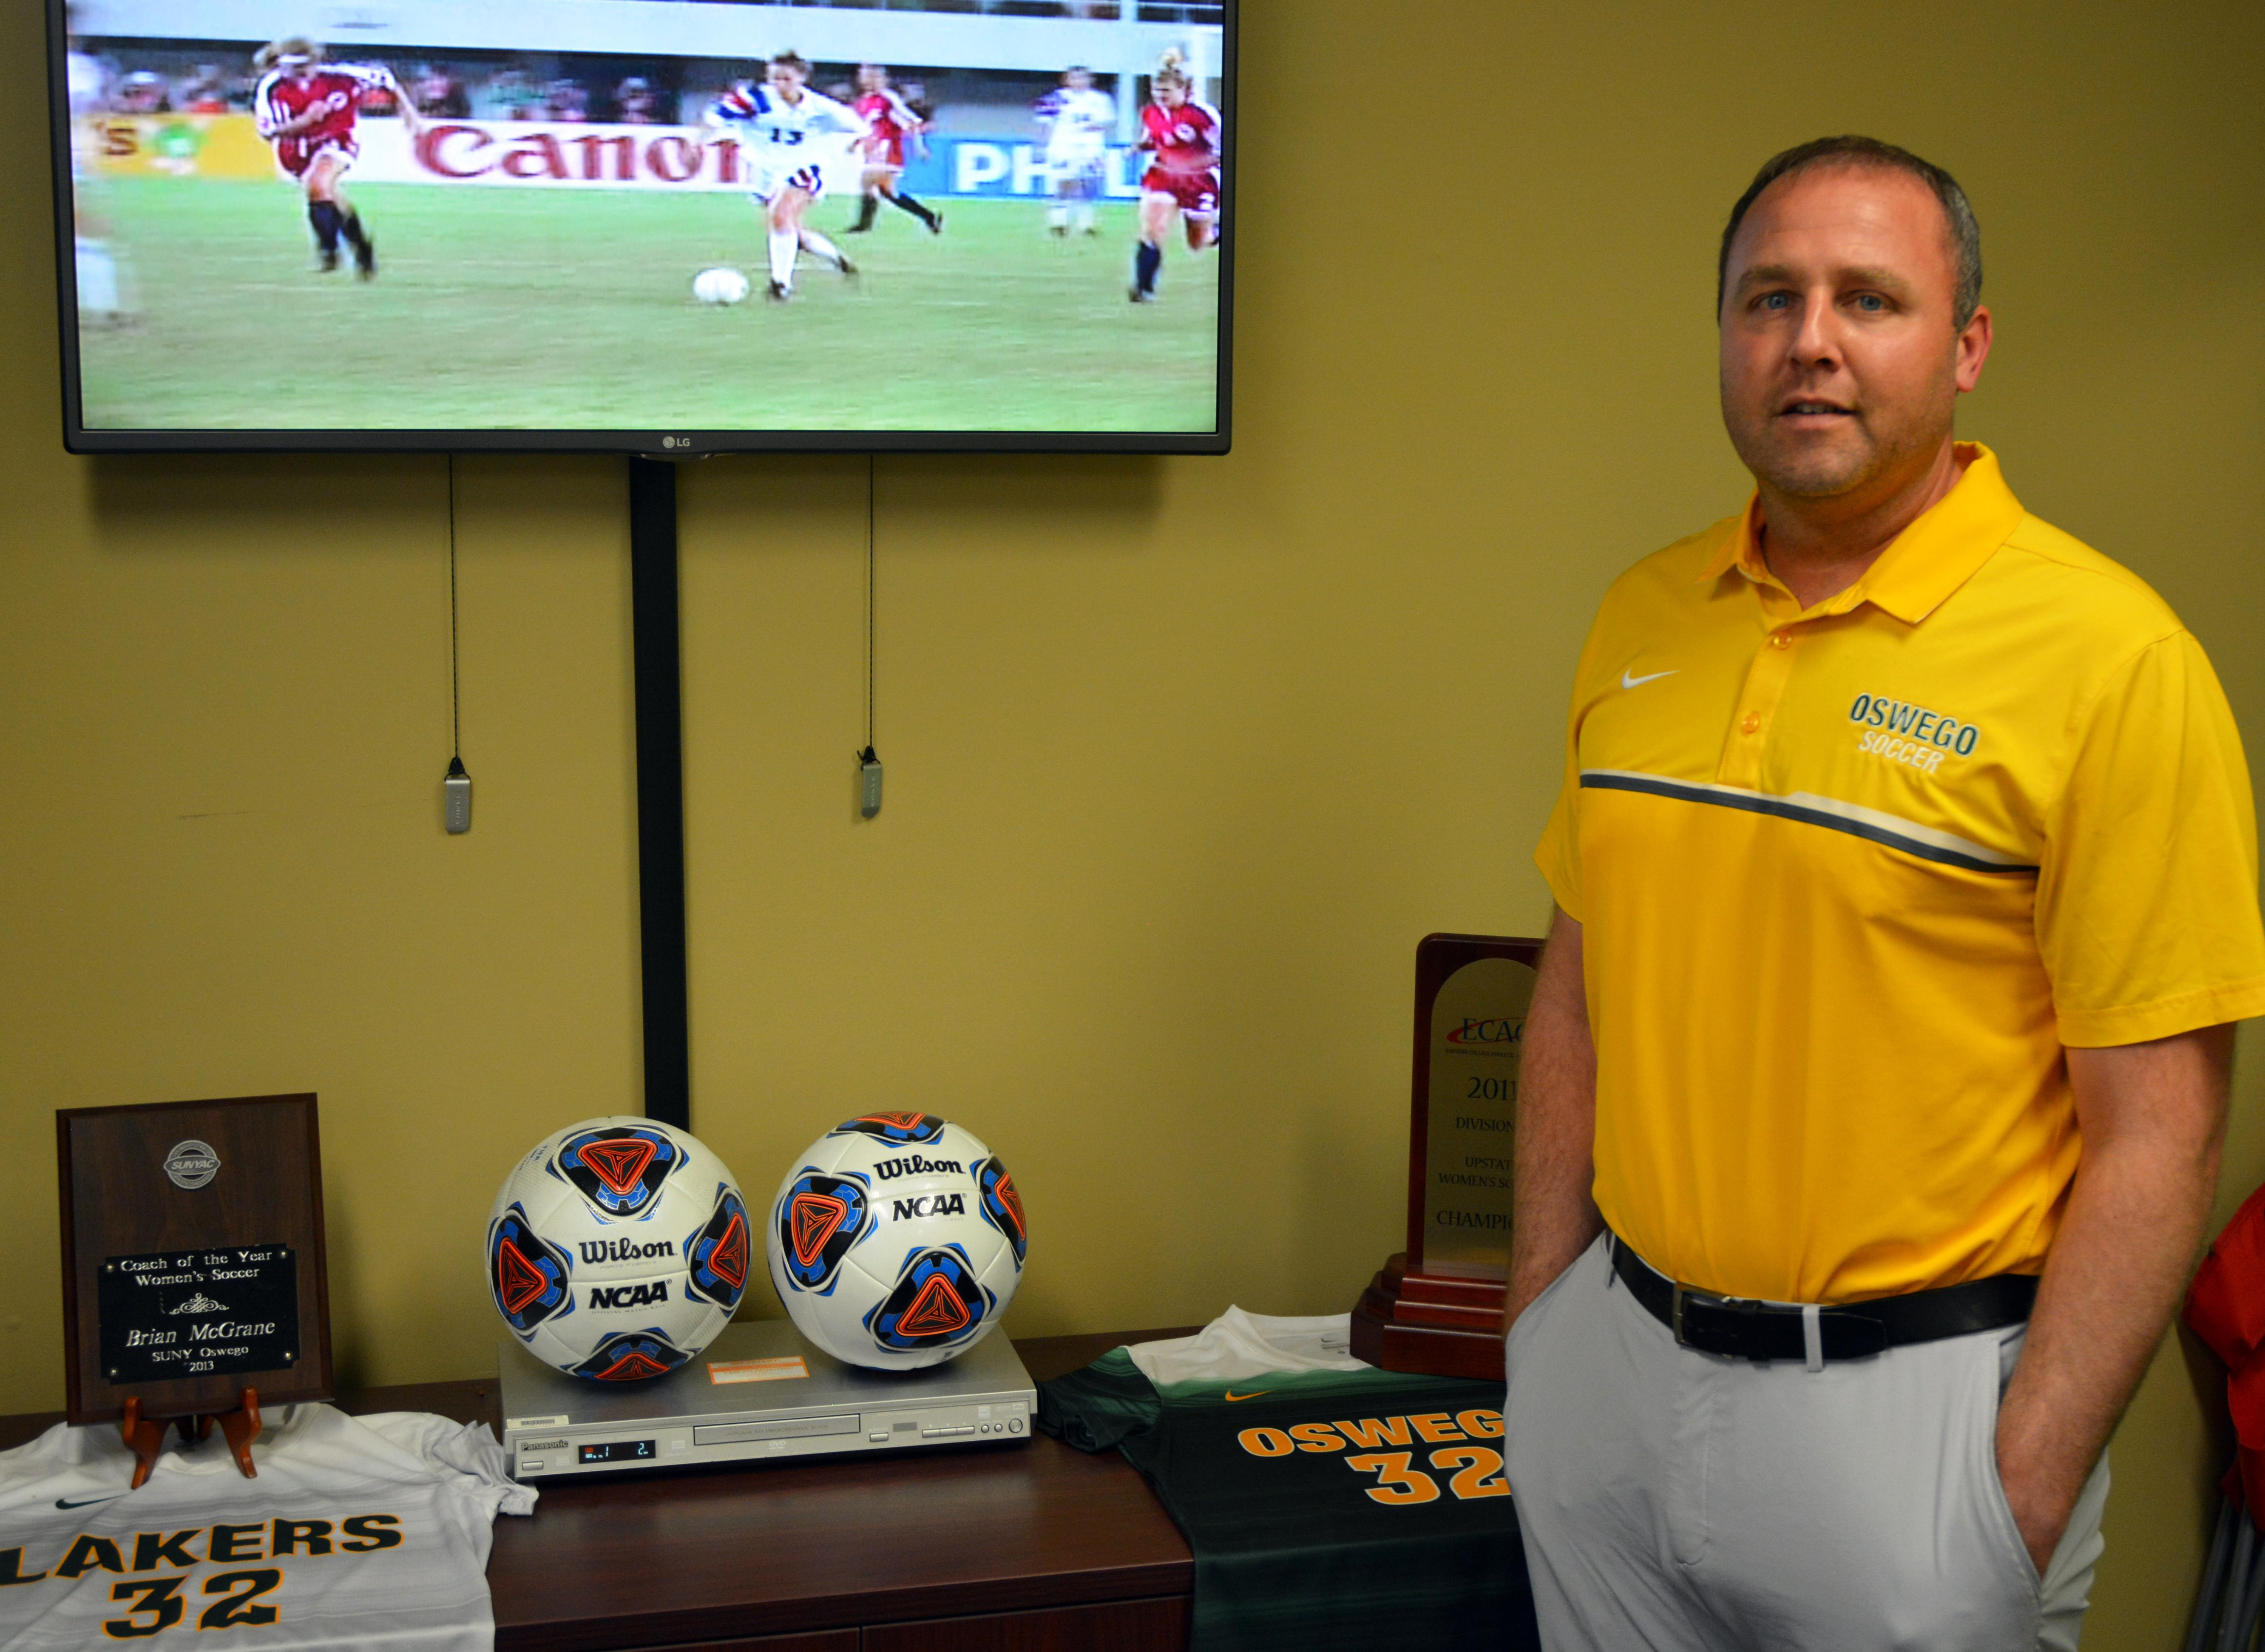 Brian McGrane prepares for another women's soccer season